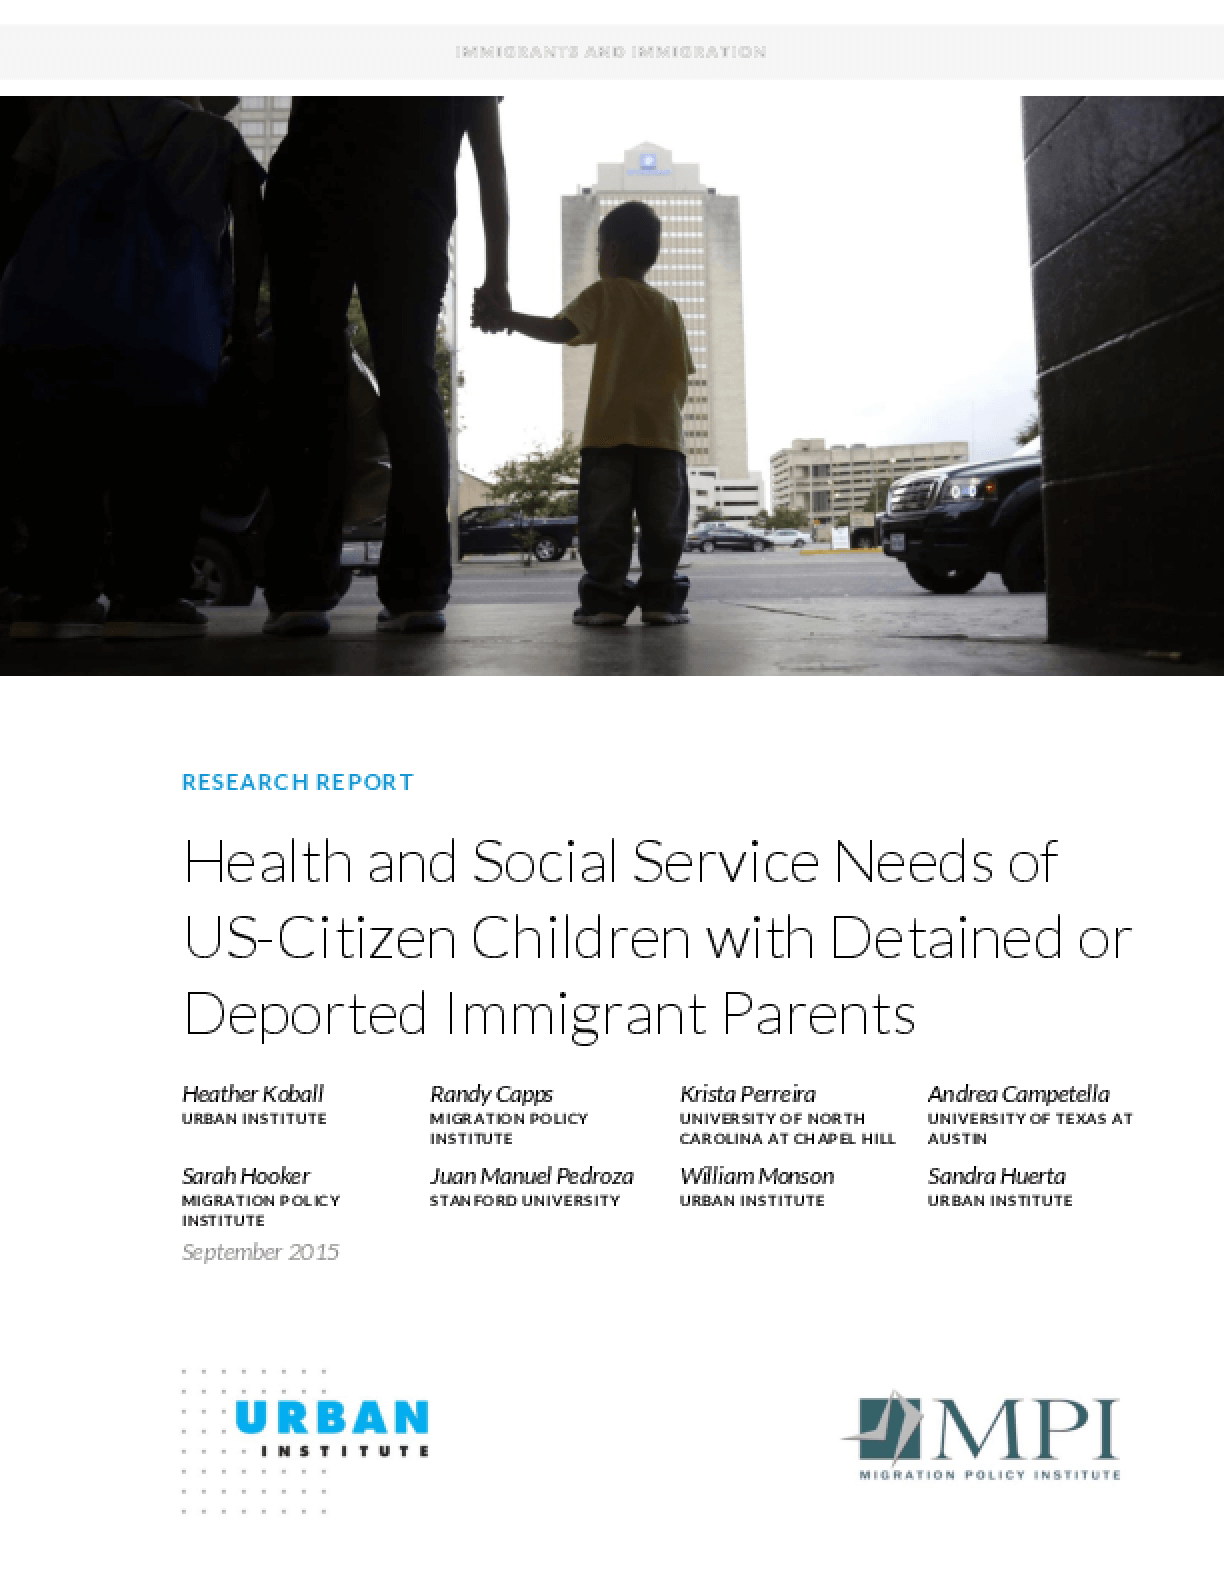 Health and Social Service Needs of US-Citizen Children with Detained or Departed Immigrant Parents